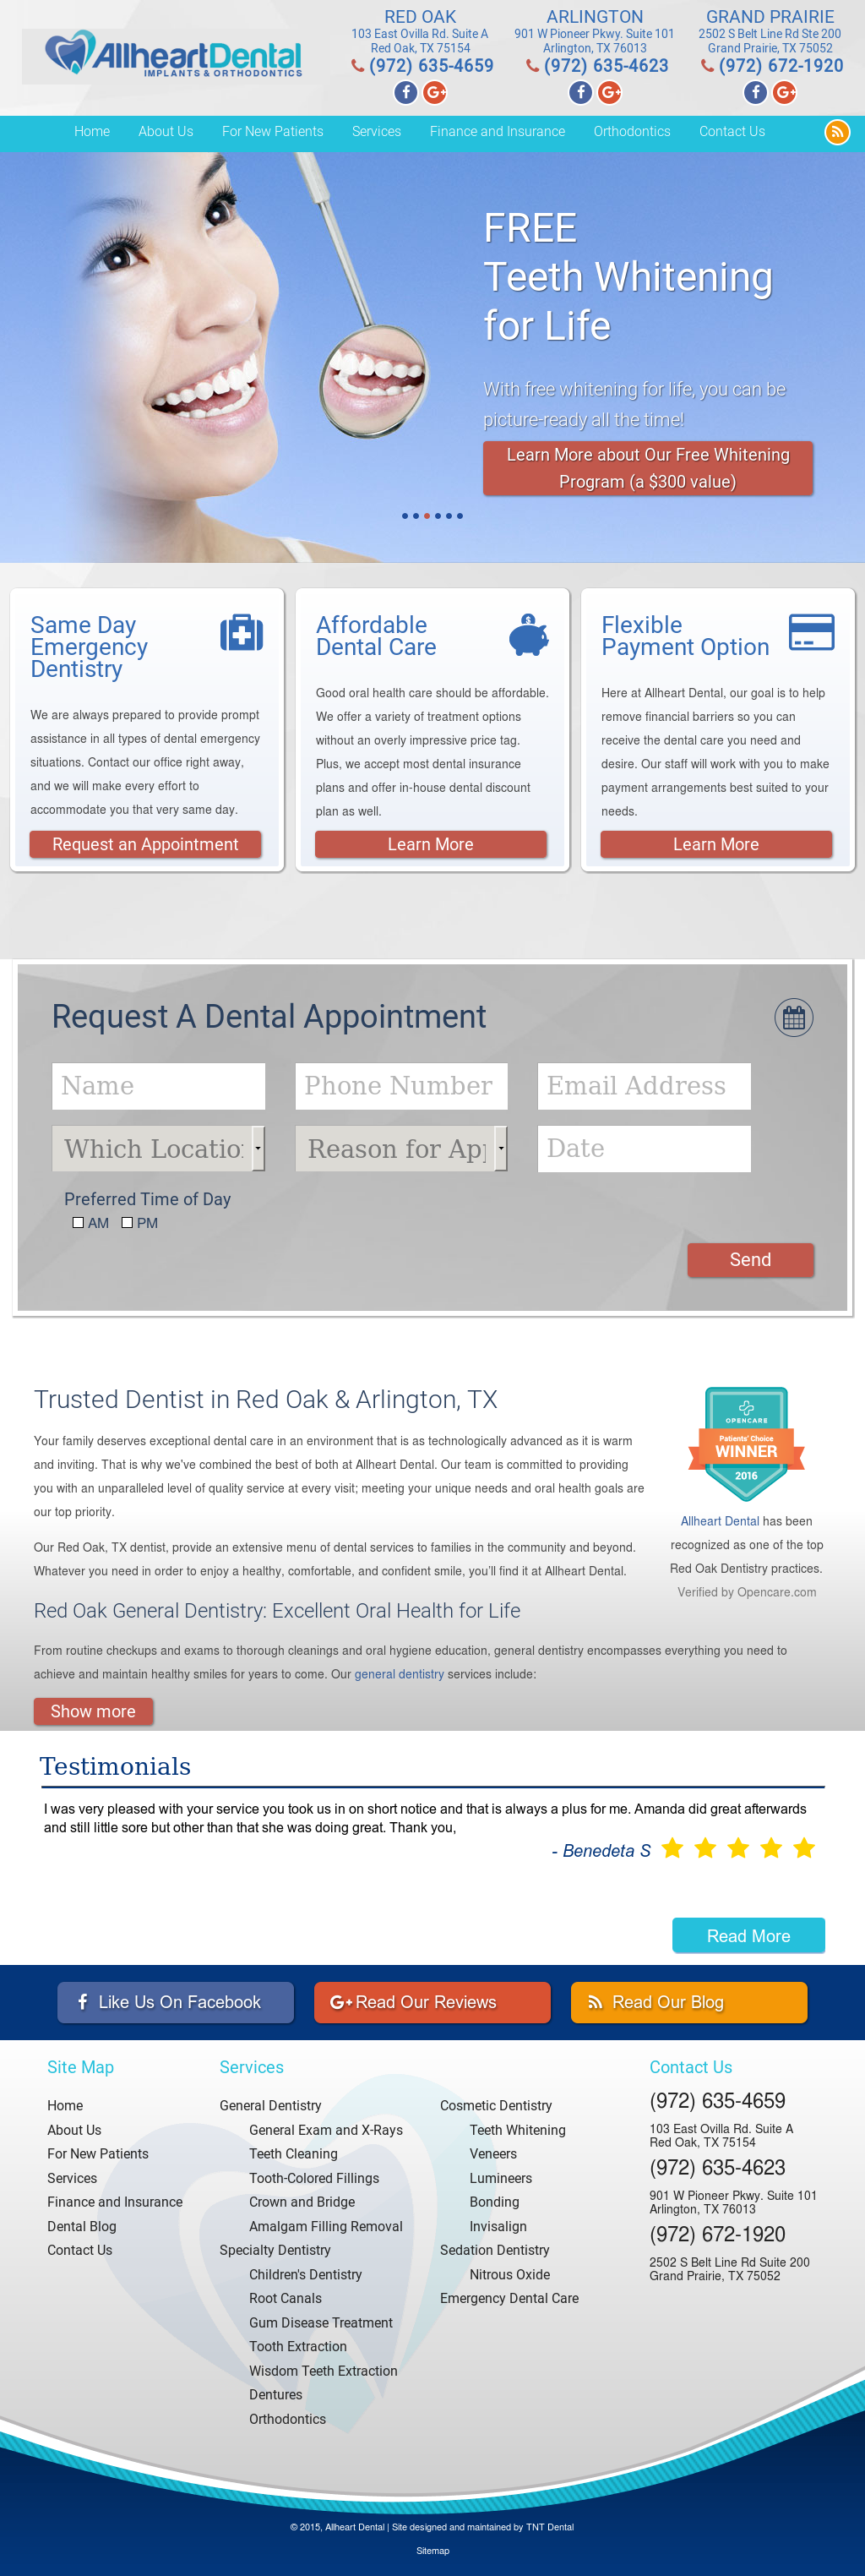 Allheart Dental Competitors, Revenue and Employees - Owler